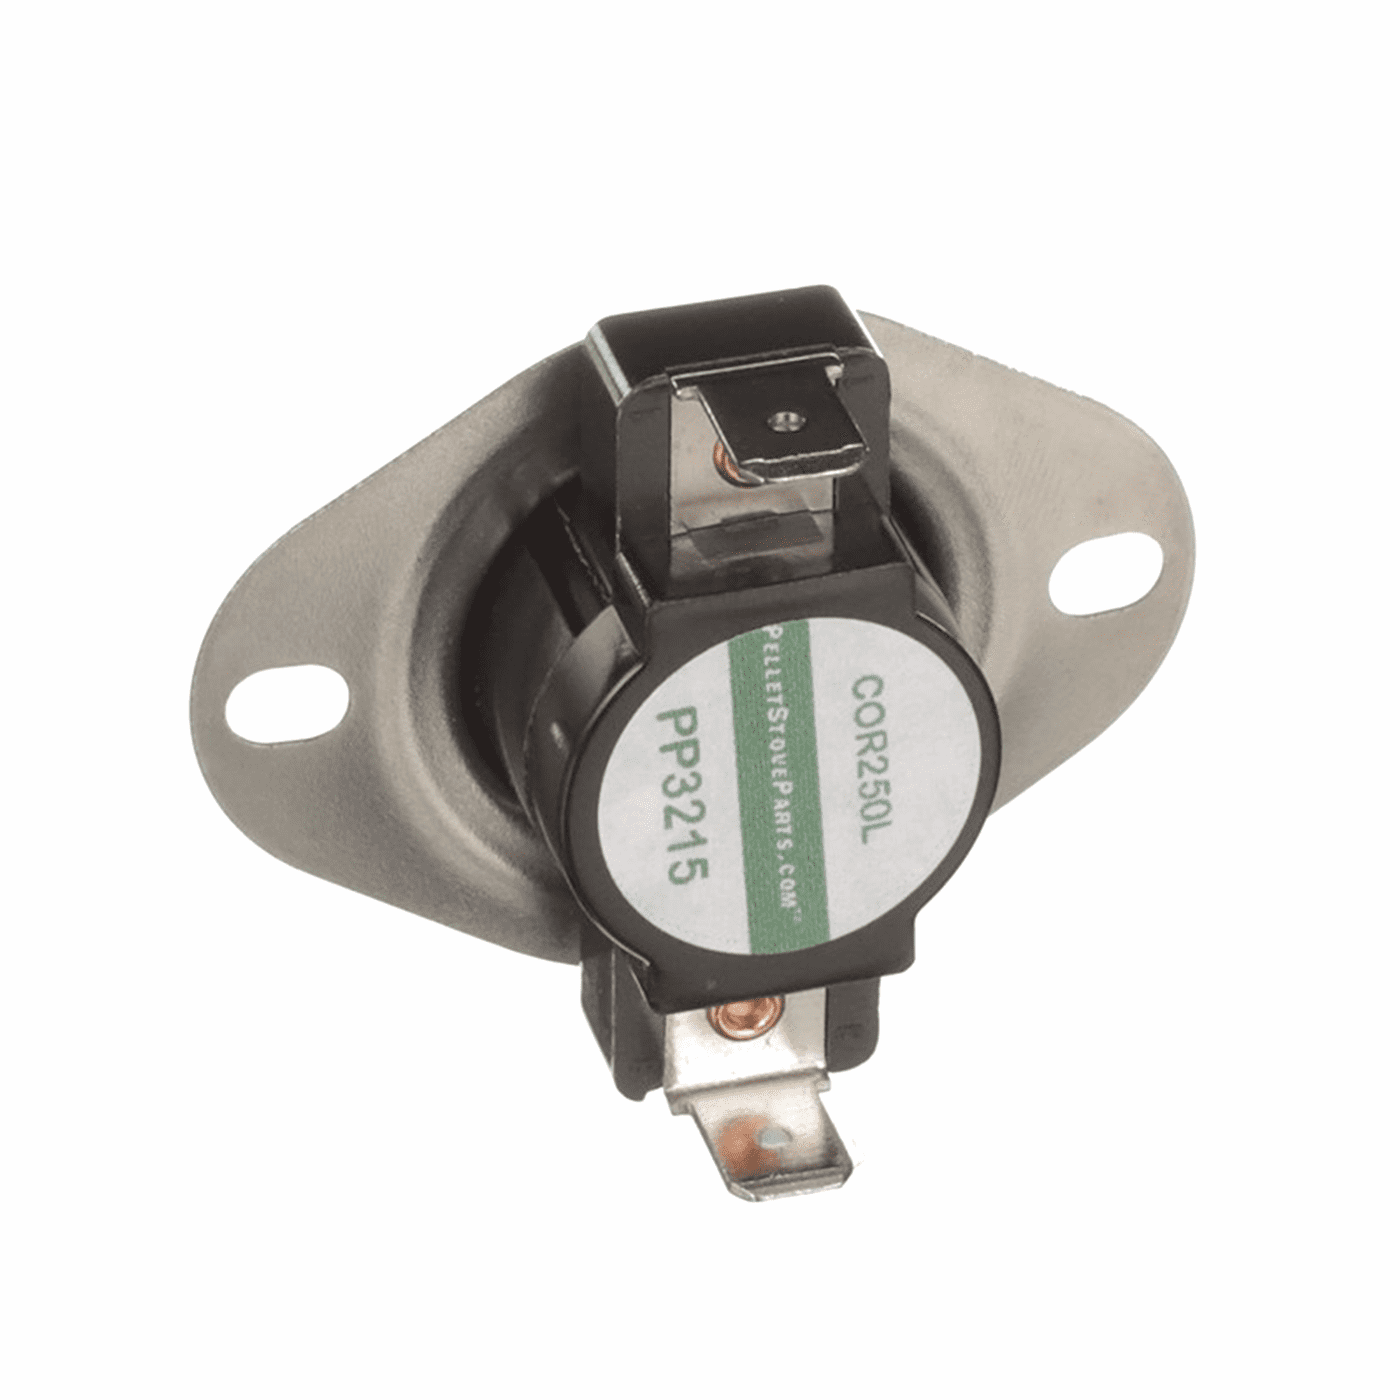 Whitfield & Lennox High Limit Snap Switch 250F, 12147705-AMP